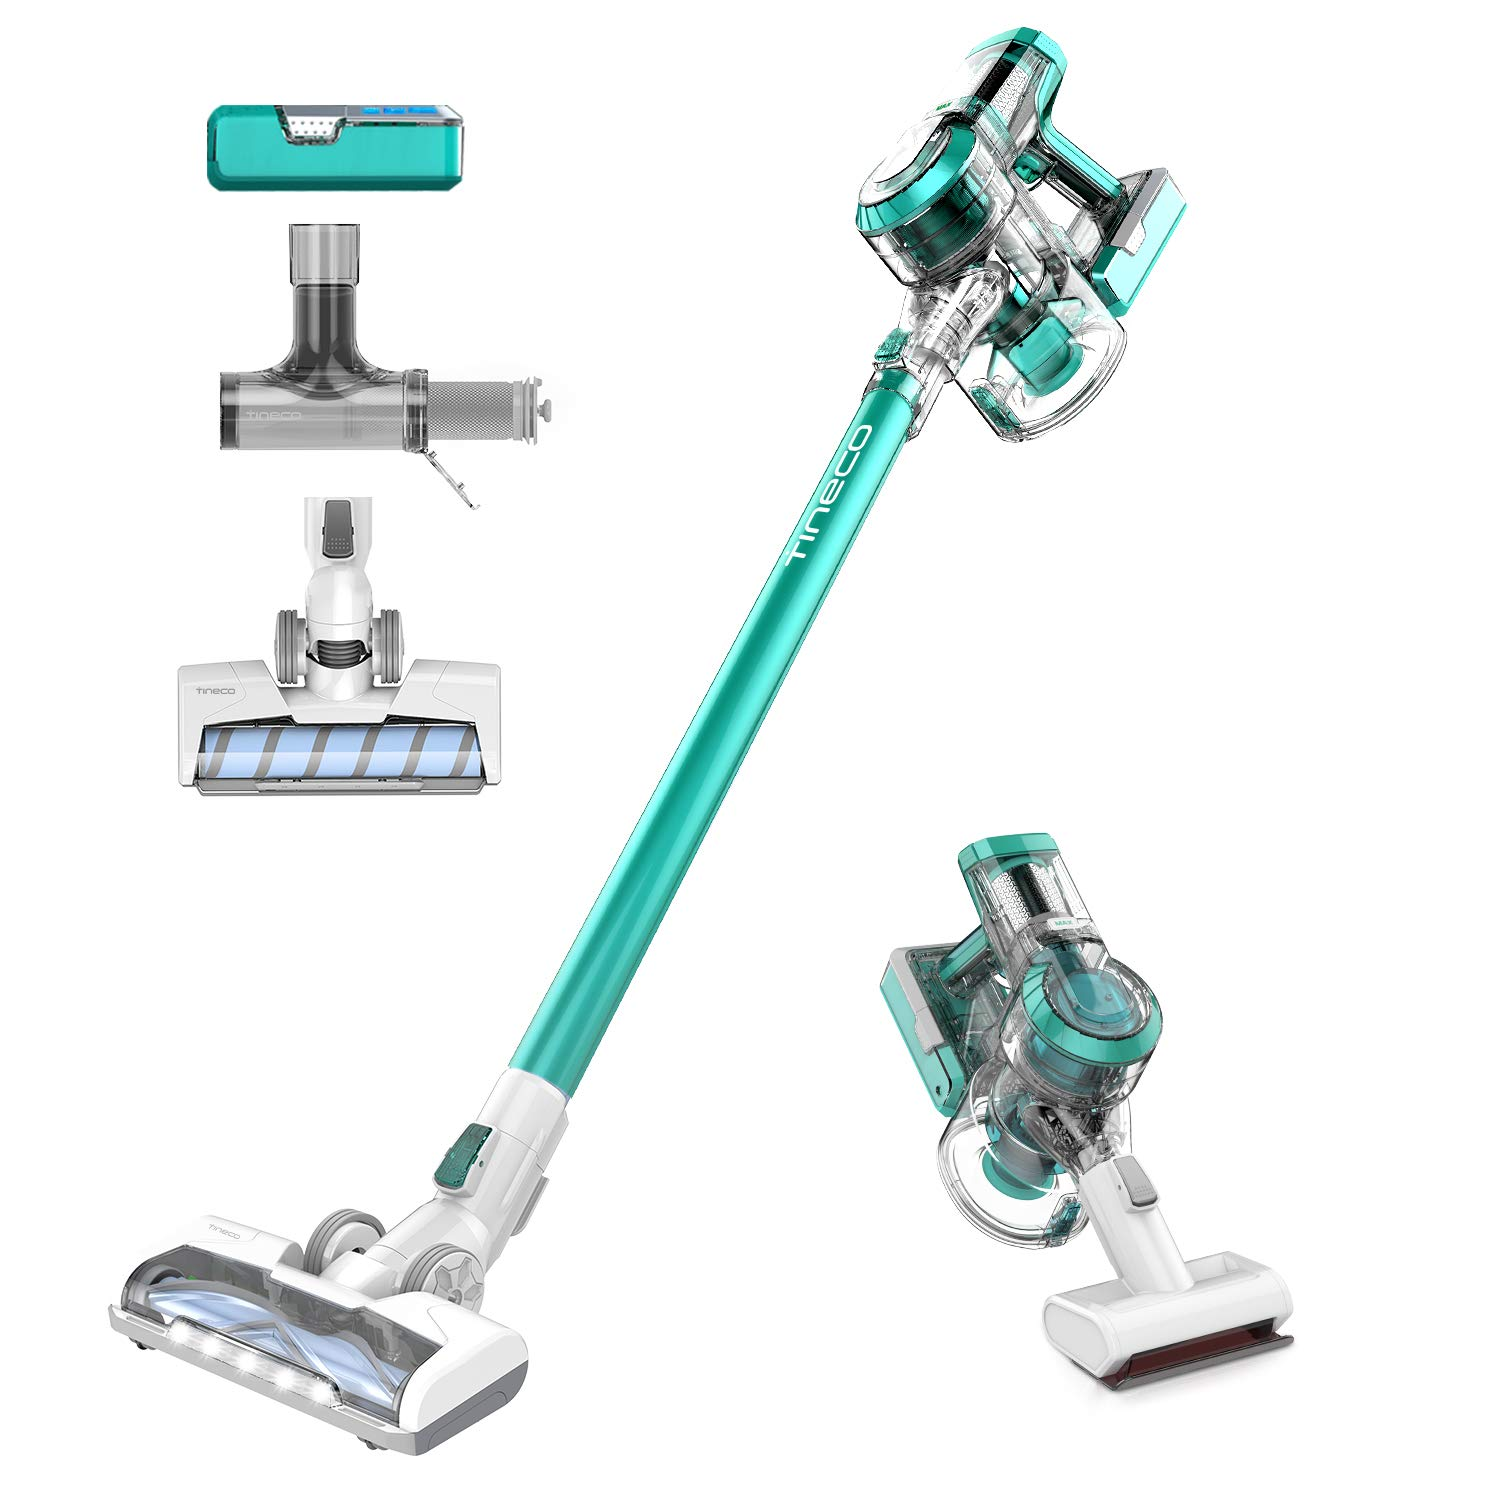 Top 10 Best Cordless Vacuums